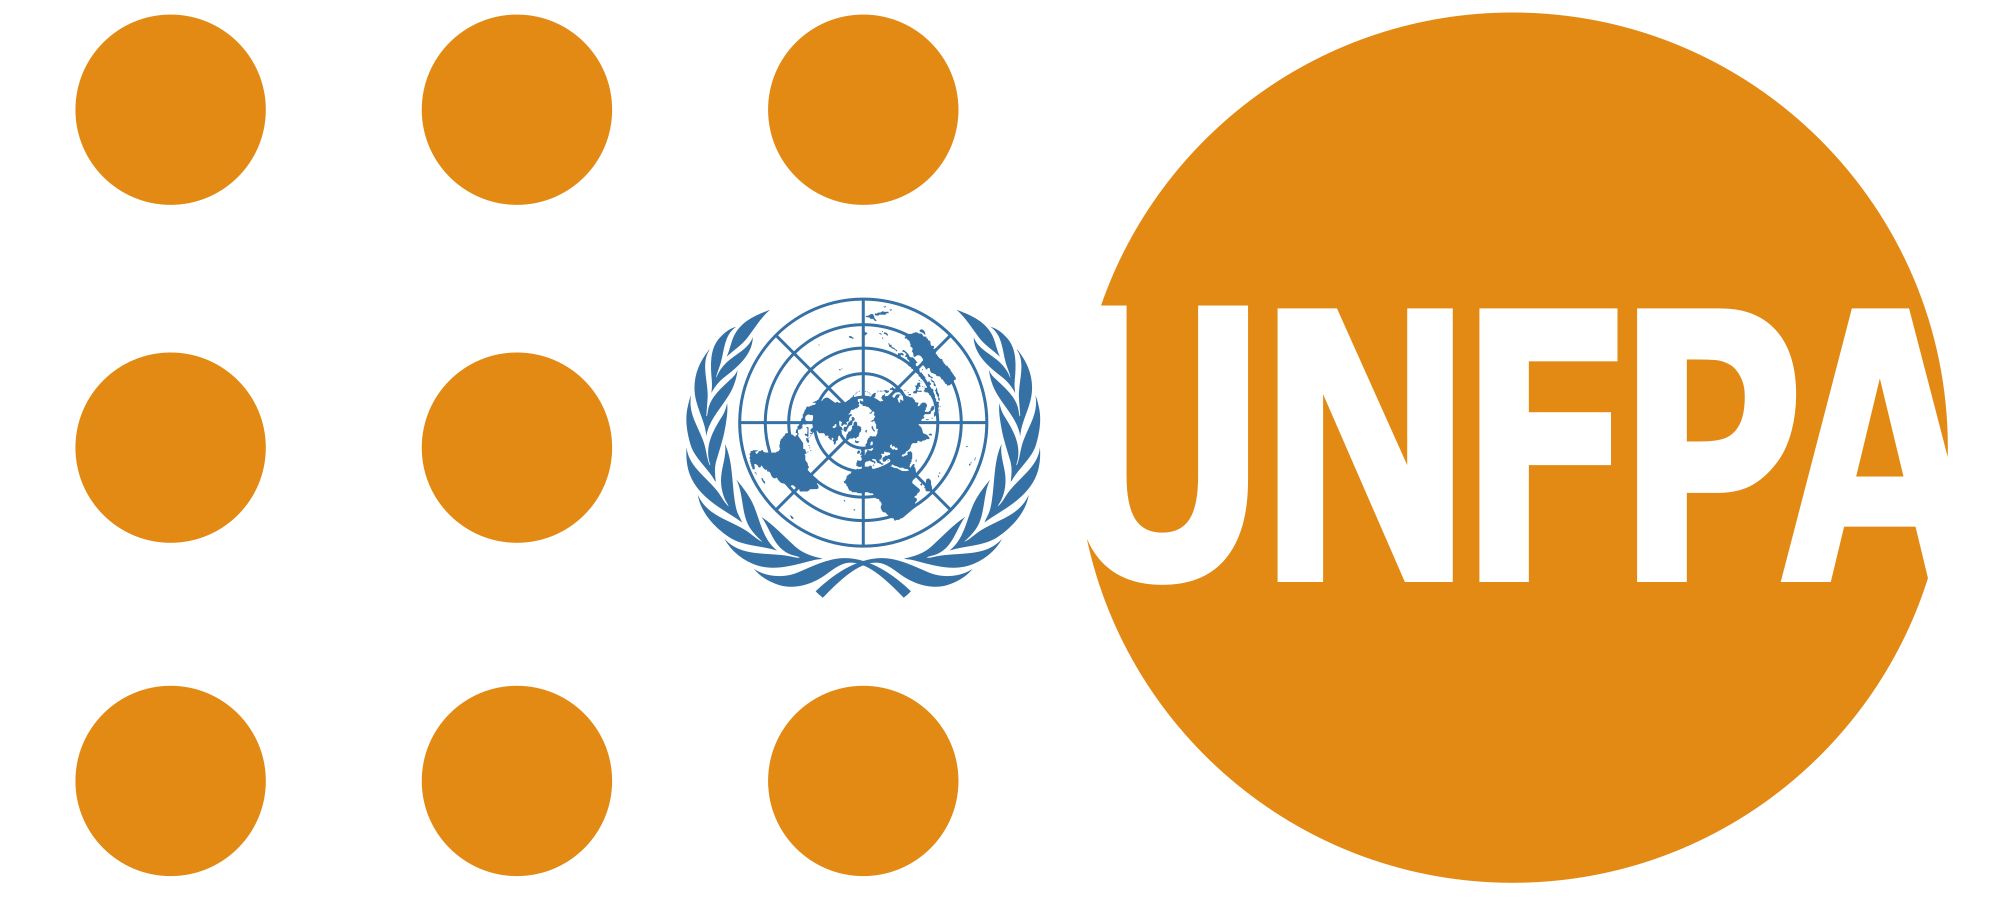 UNFPA Uganda Jobs - Alevel National Driver - FRESHER JOBS UGANDA